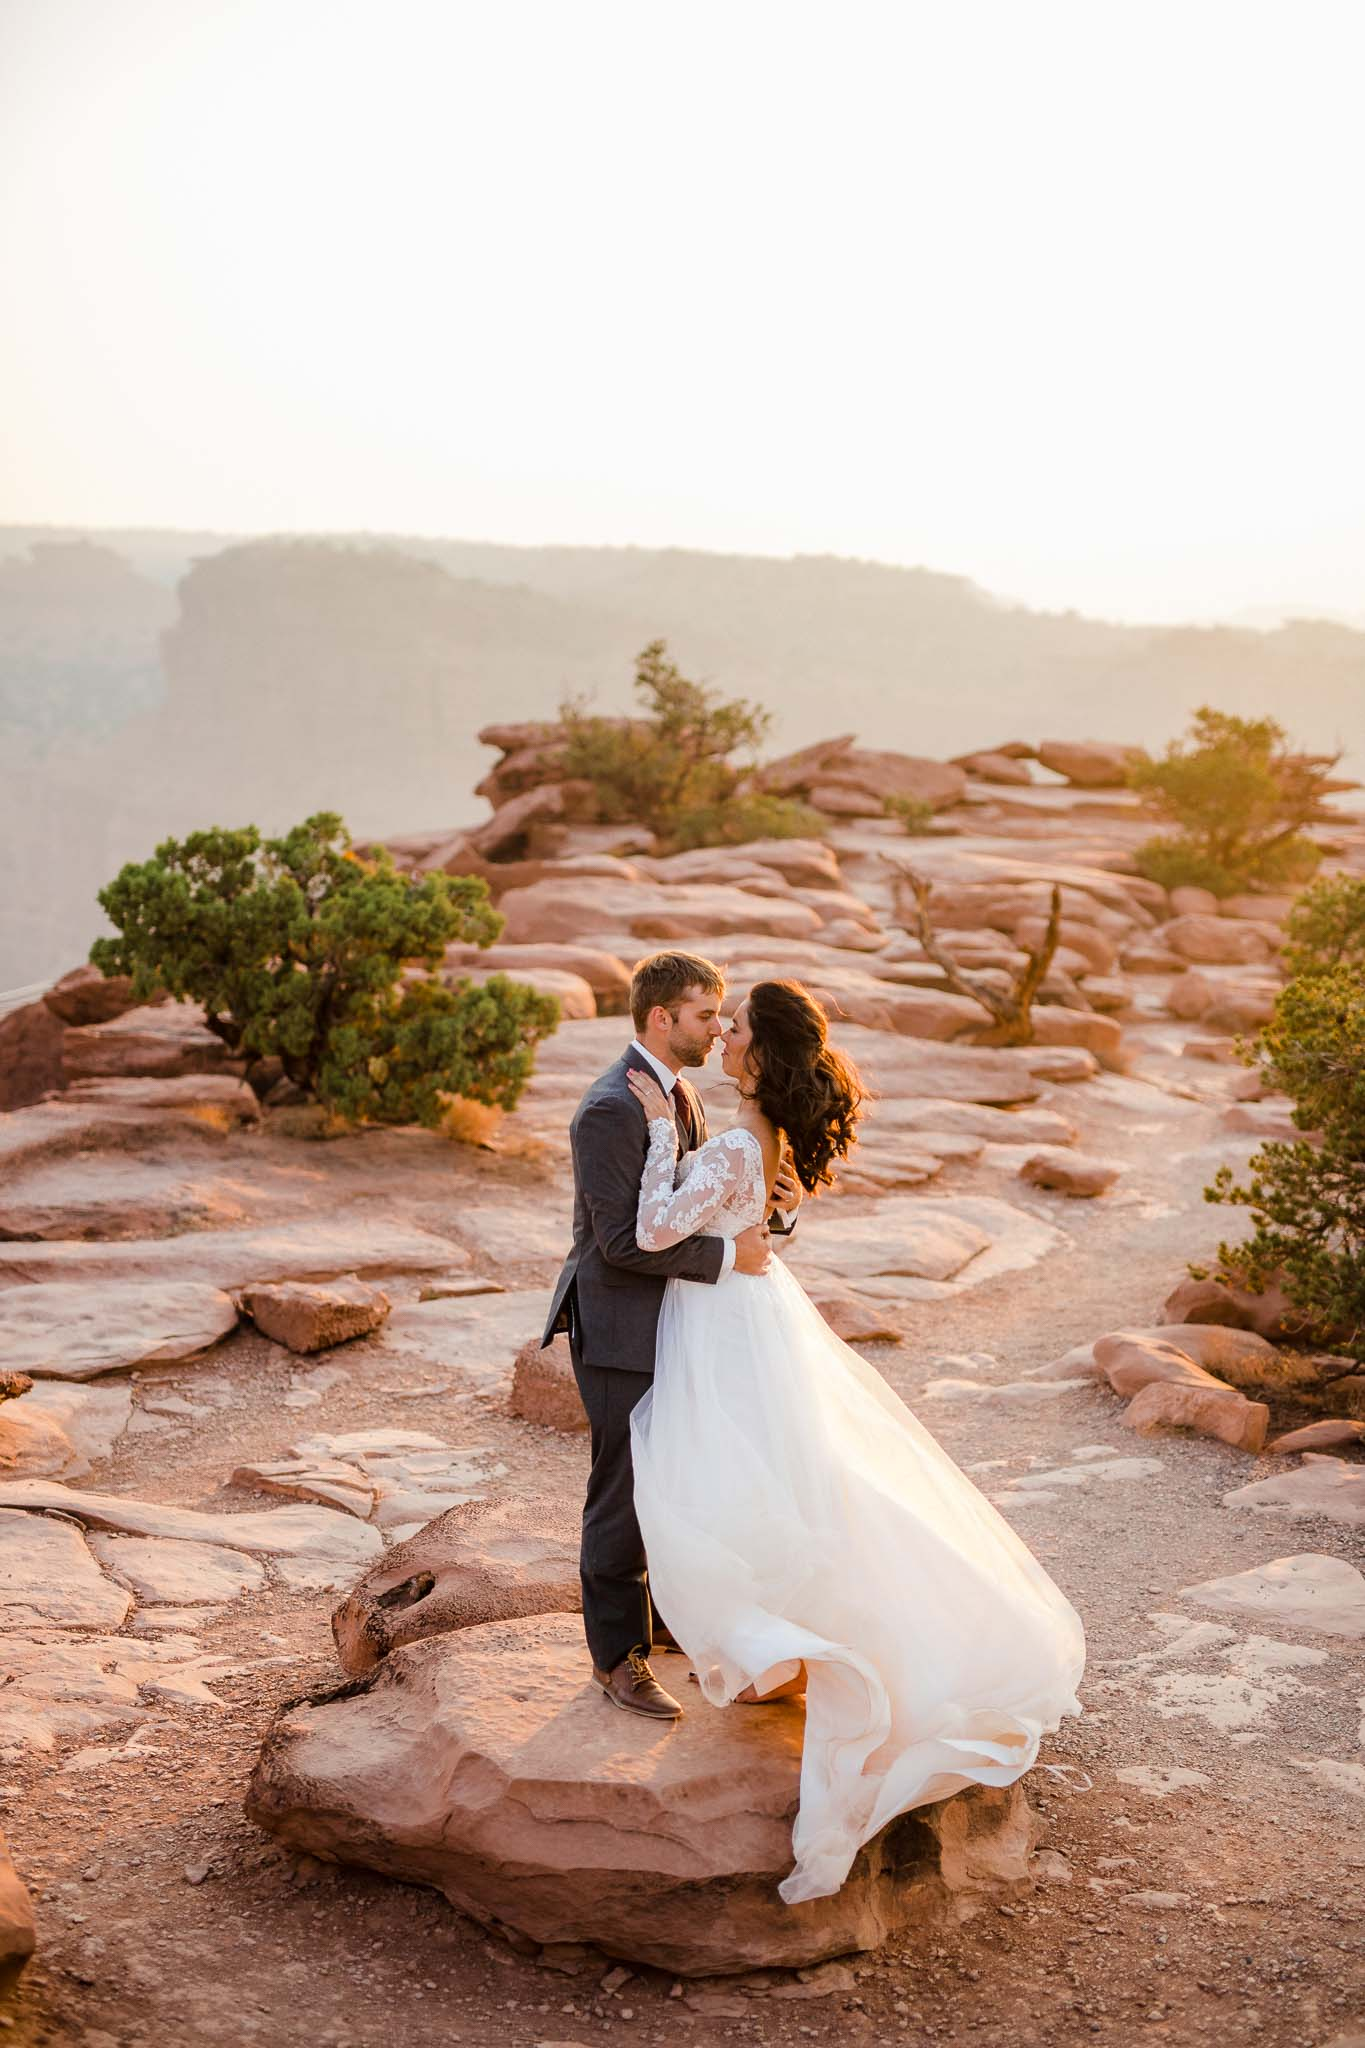 Epic wedding portrait at Capitol Reef National Park in Utah